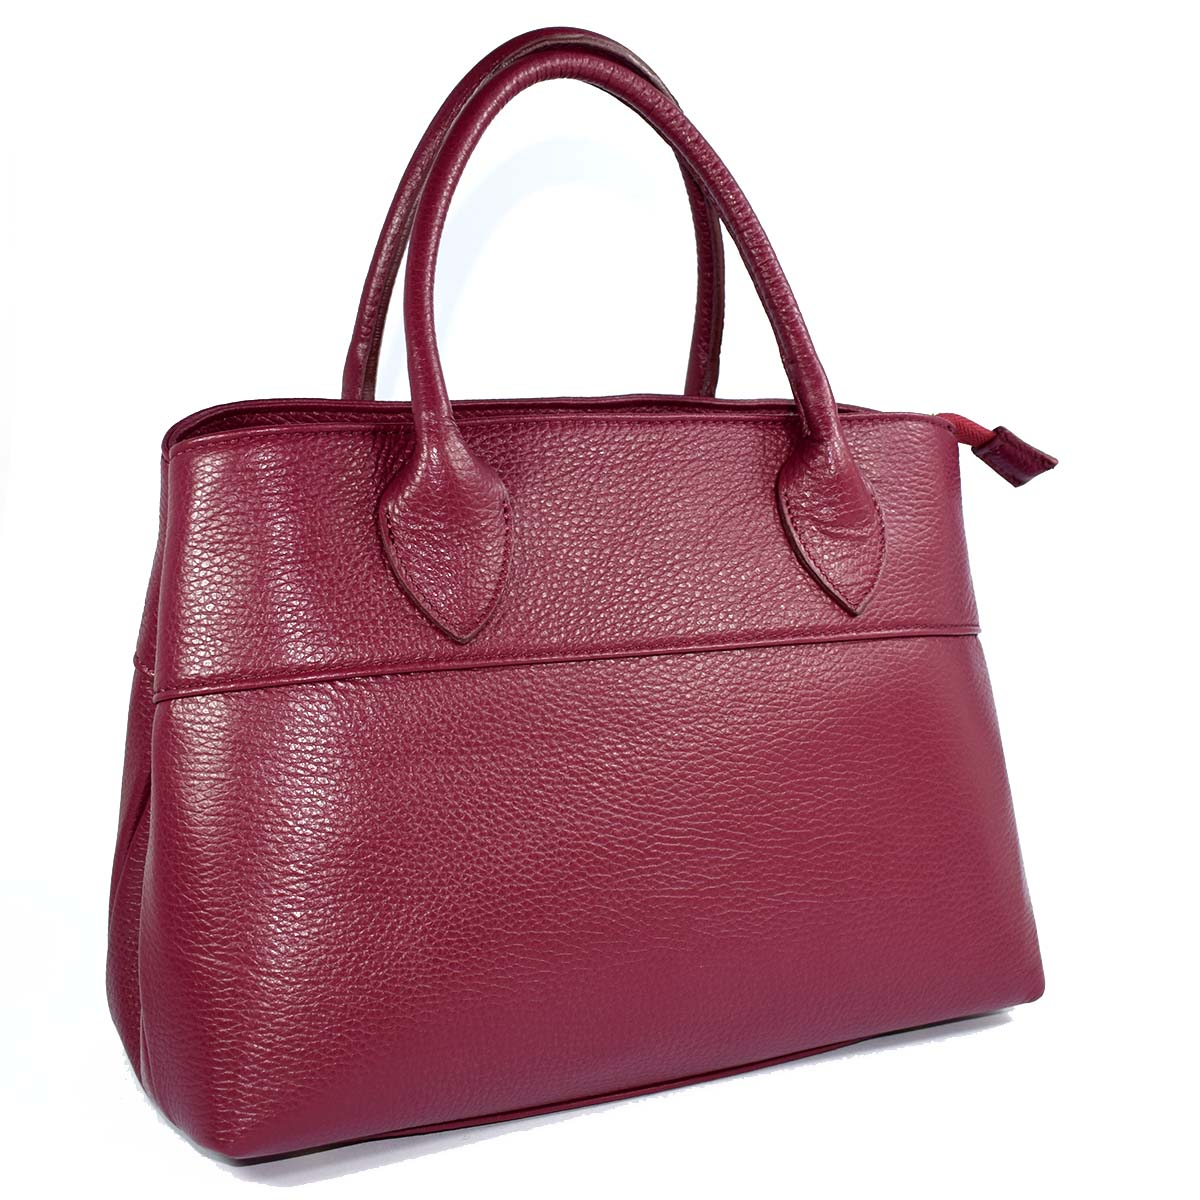 12744 handbag 2 handles by Bottega Fiorentina